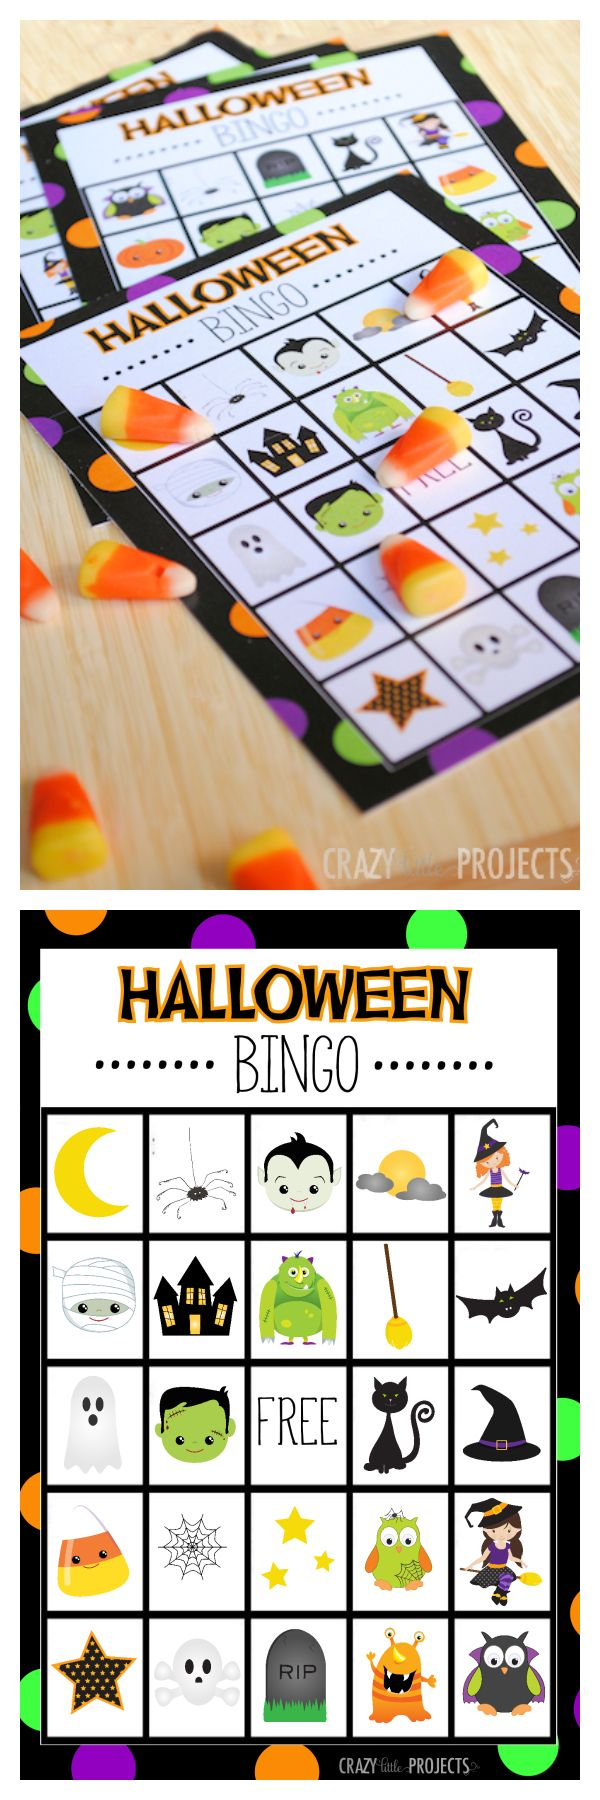 25 free halloween printables - Halloween Kid Games Online